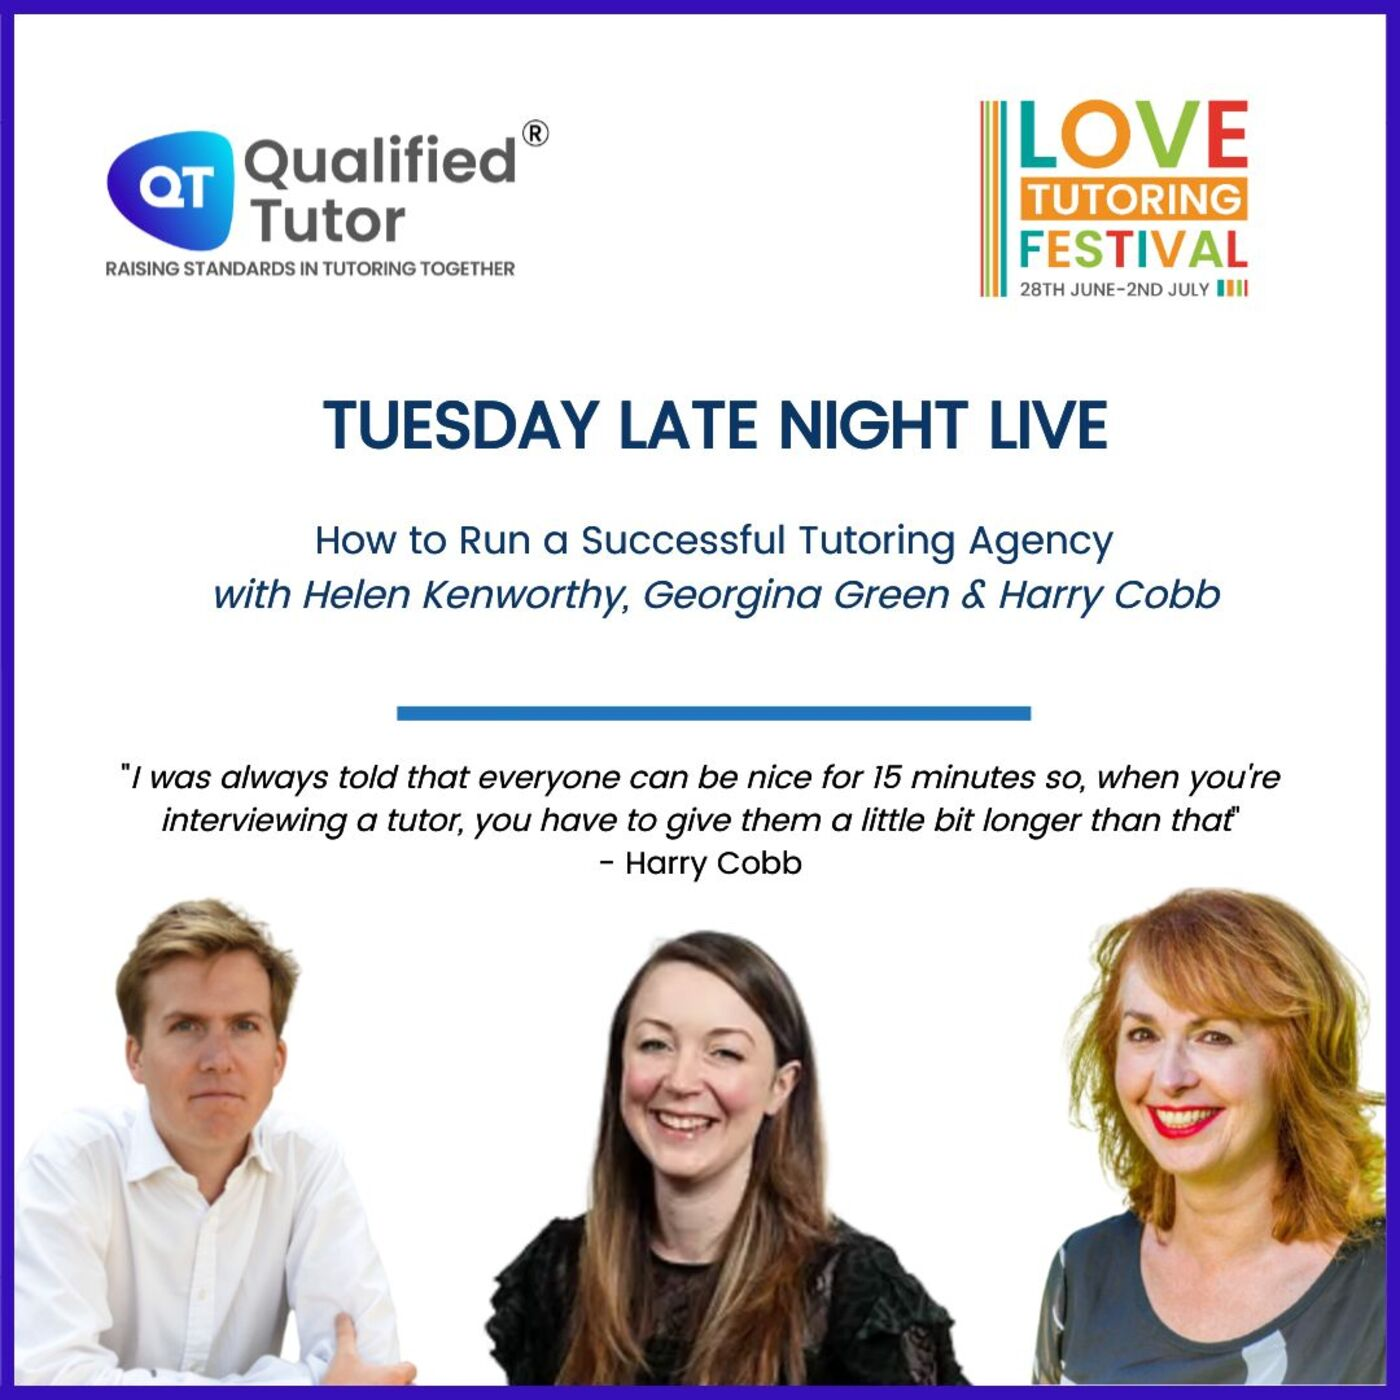 Love Tutoring Festival 2021 Podcast #2 - How to Run a Successful Tutoring Agency